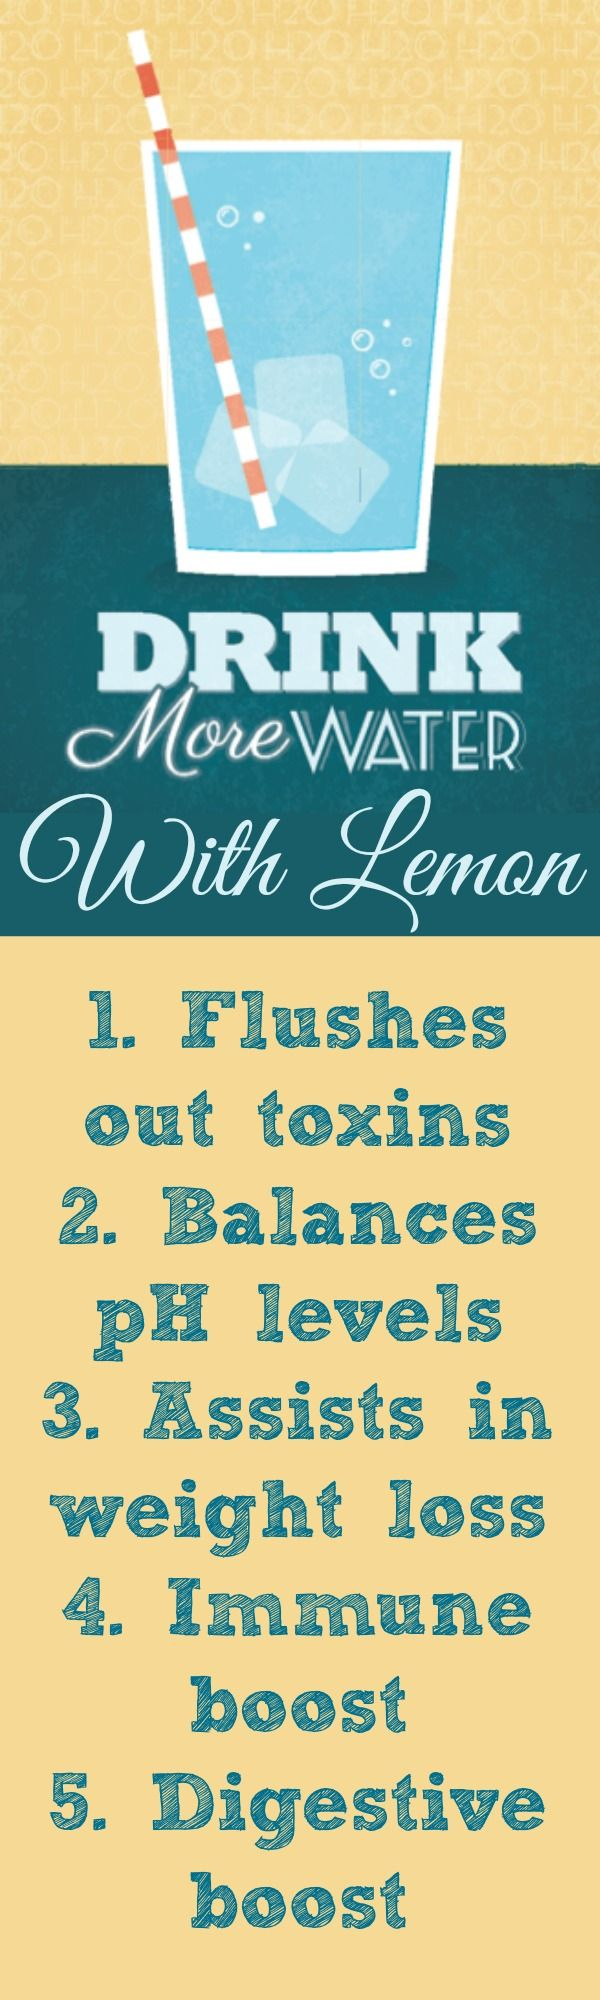 How to use water with lemon for weight loss ehow - 5 Reasons You Should Drink Lemon Water Every Day